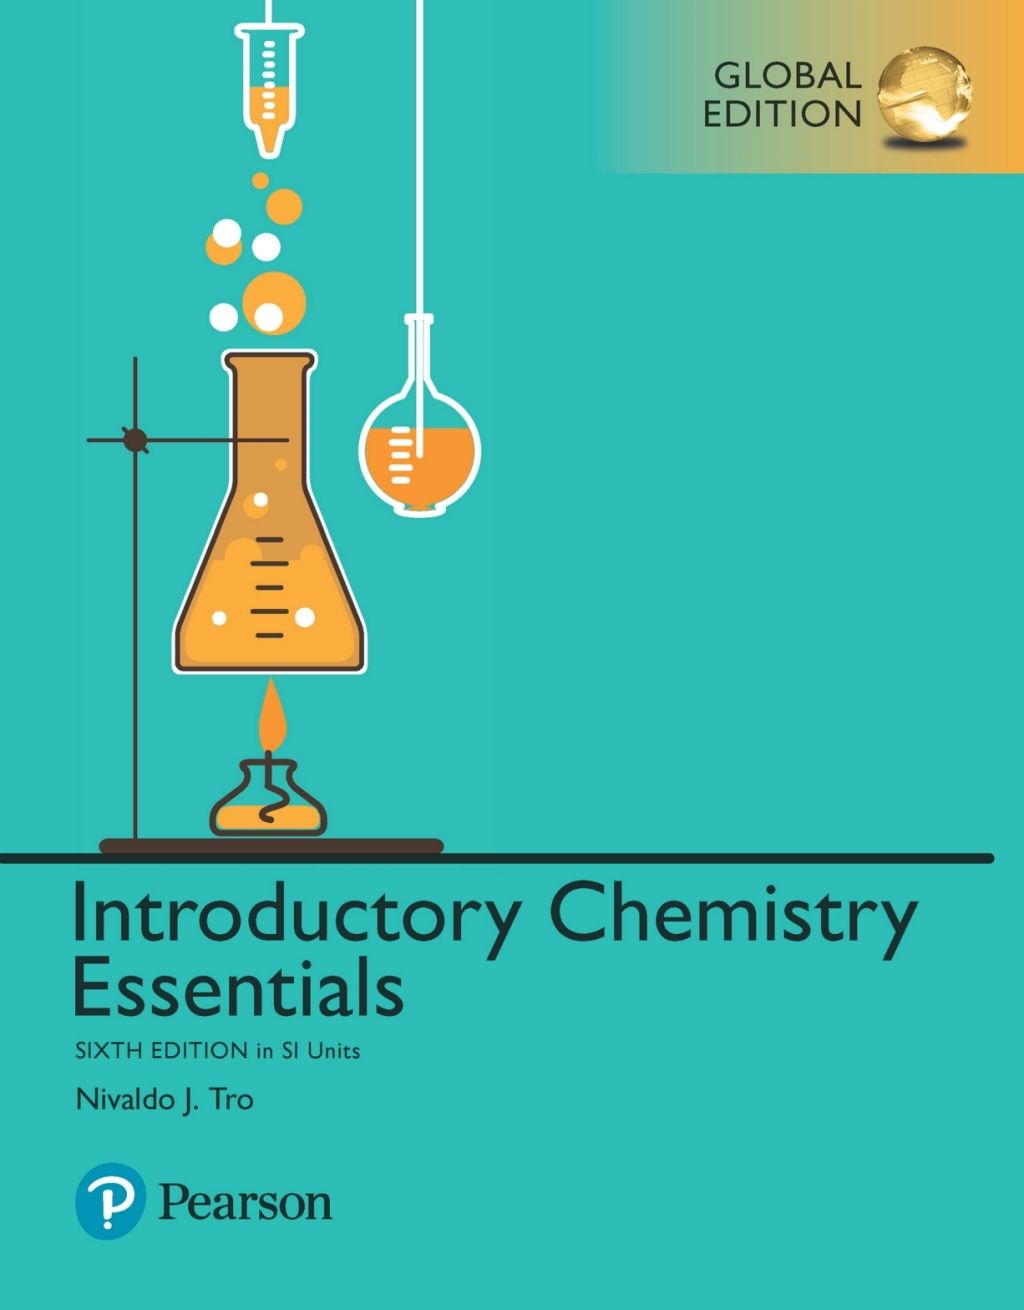 Introductory Chemistry Essentials In Si Units 6th Edition Ebook Rental In 2021 Conceptual Understanding Student Encouragement 21st Century Skills